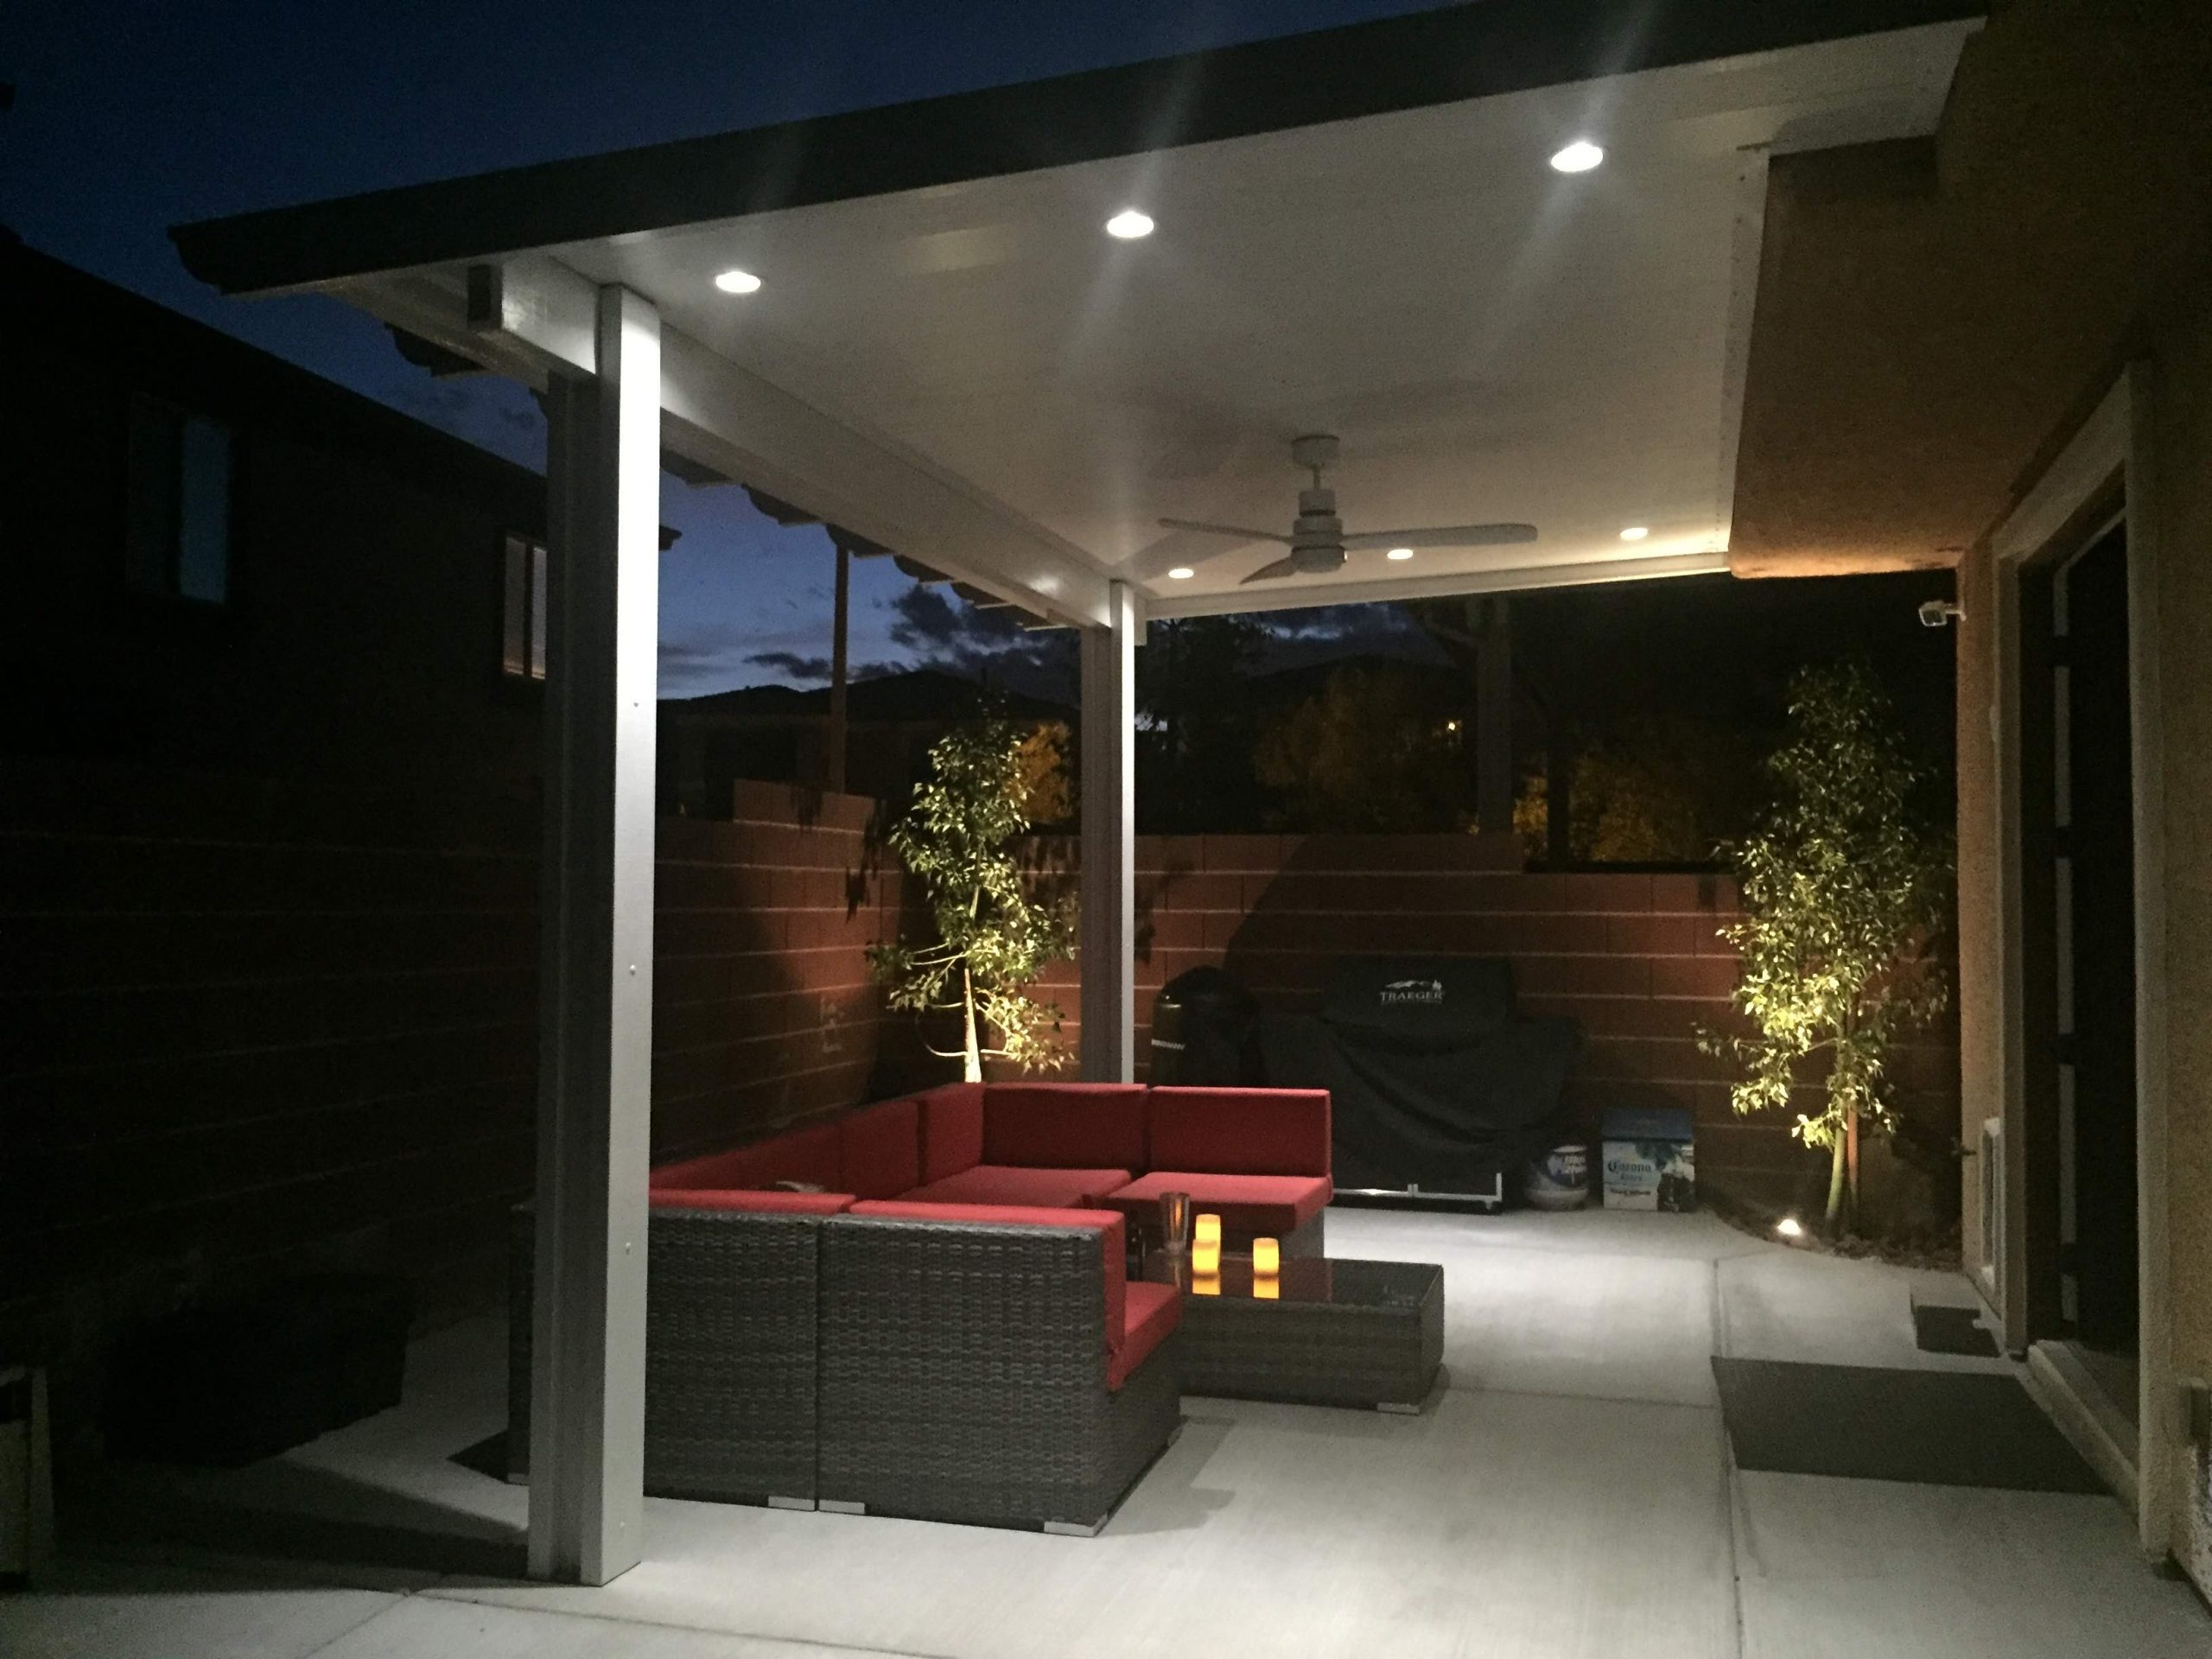 Patio Cover awning at night in Houston